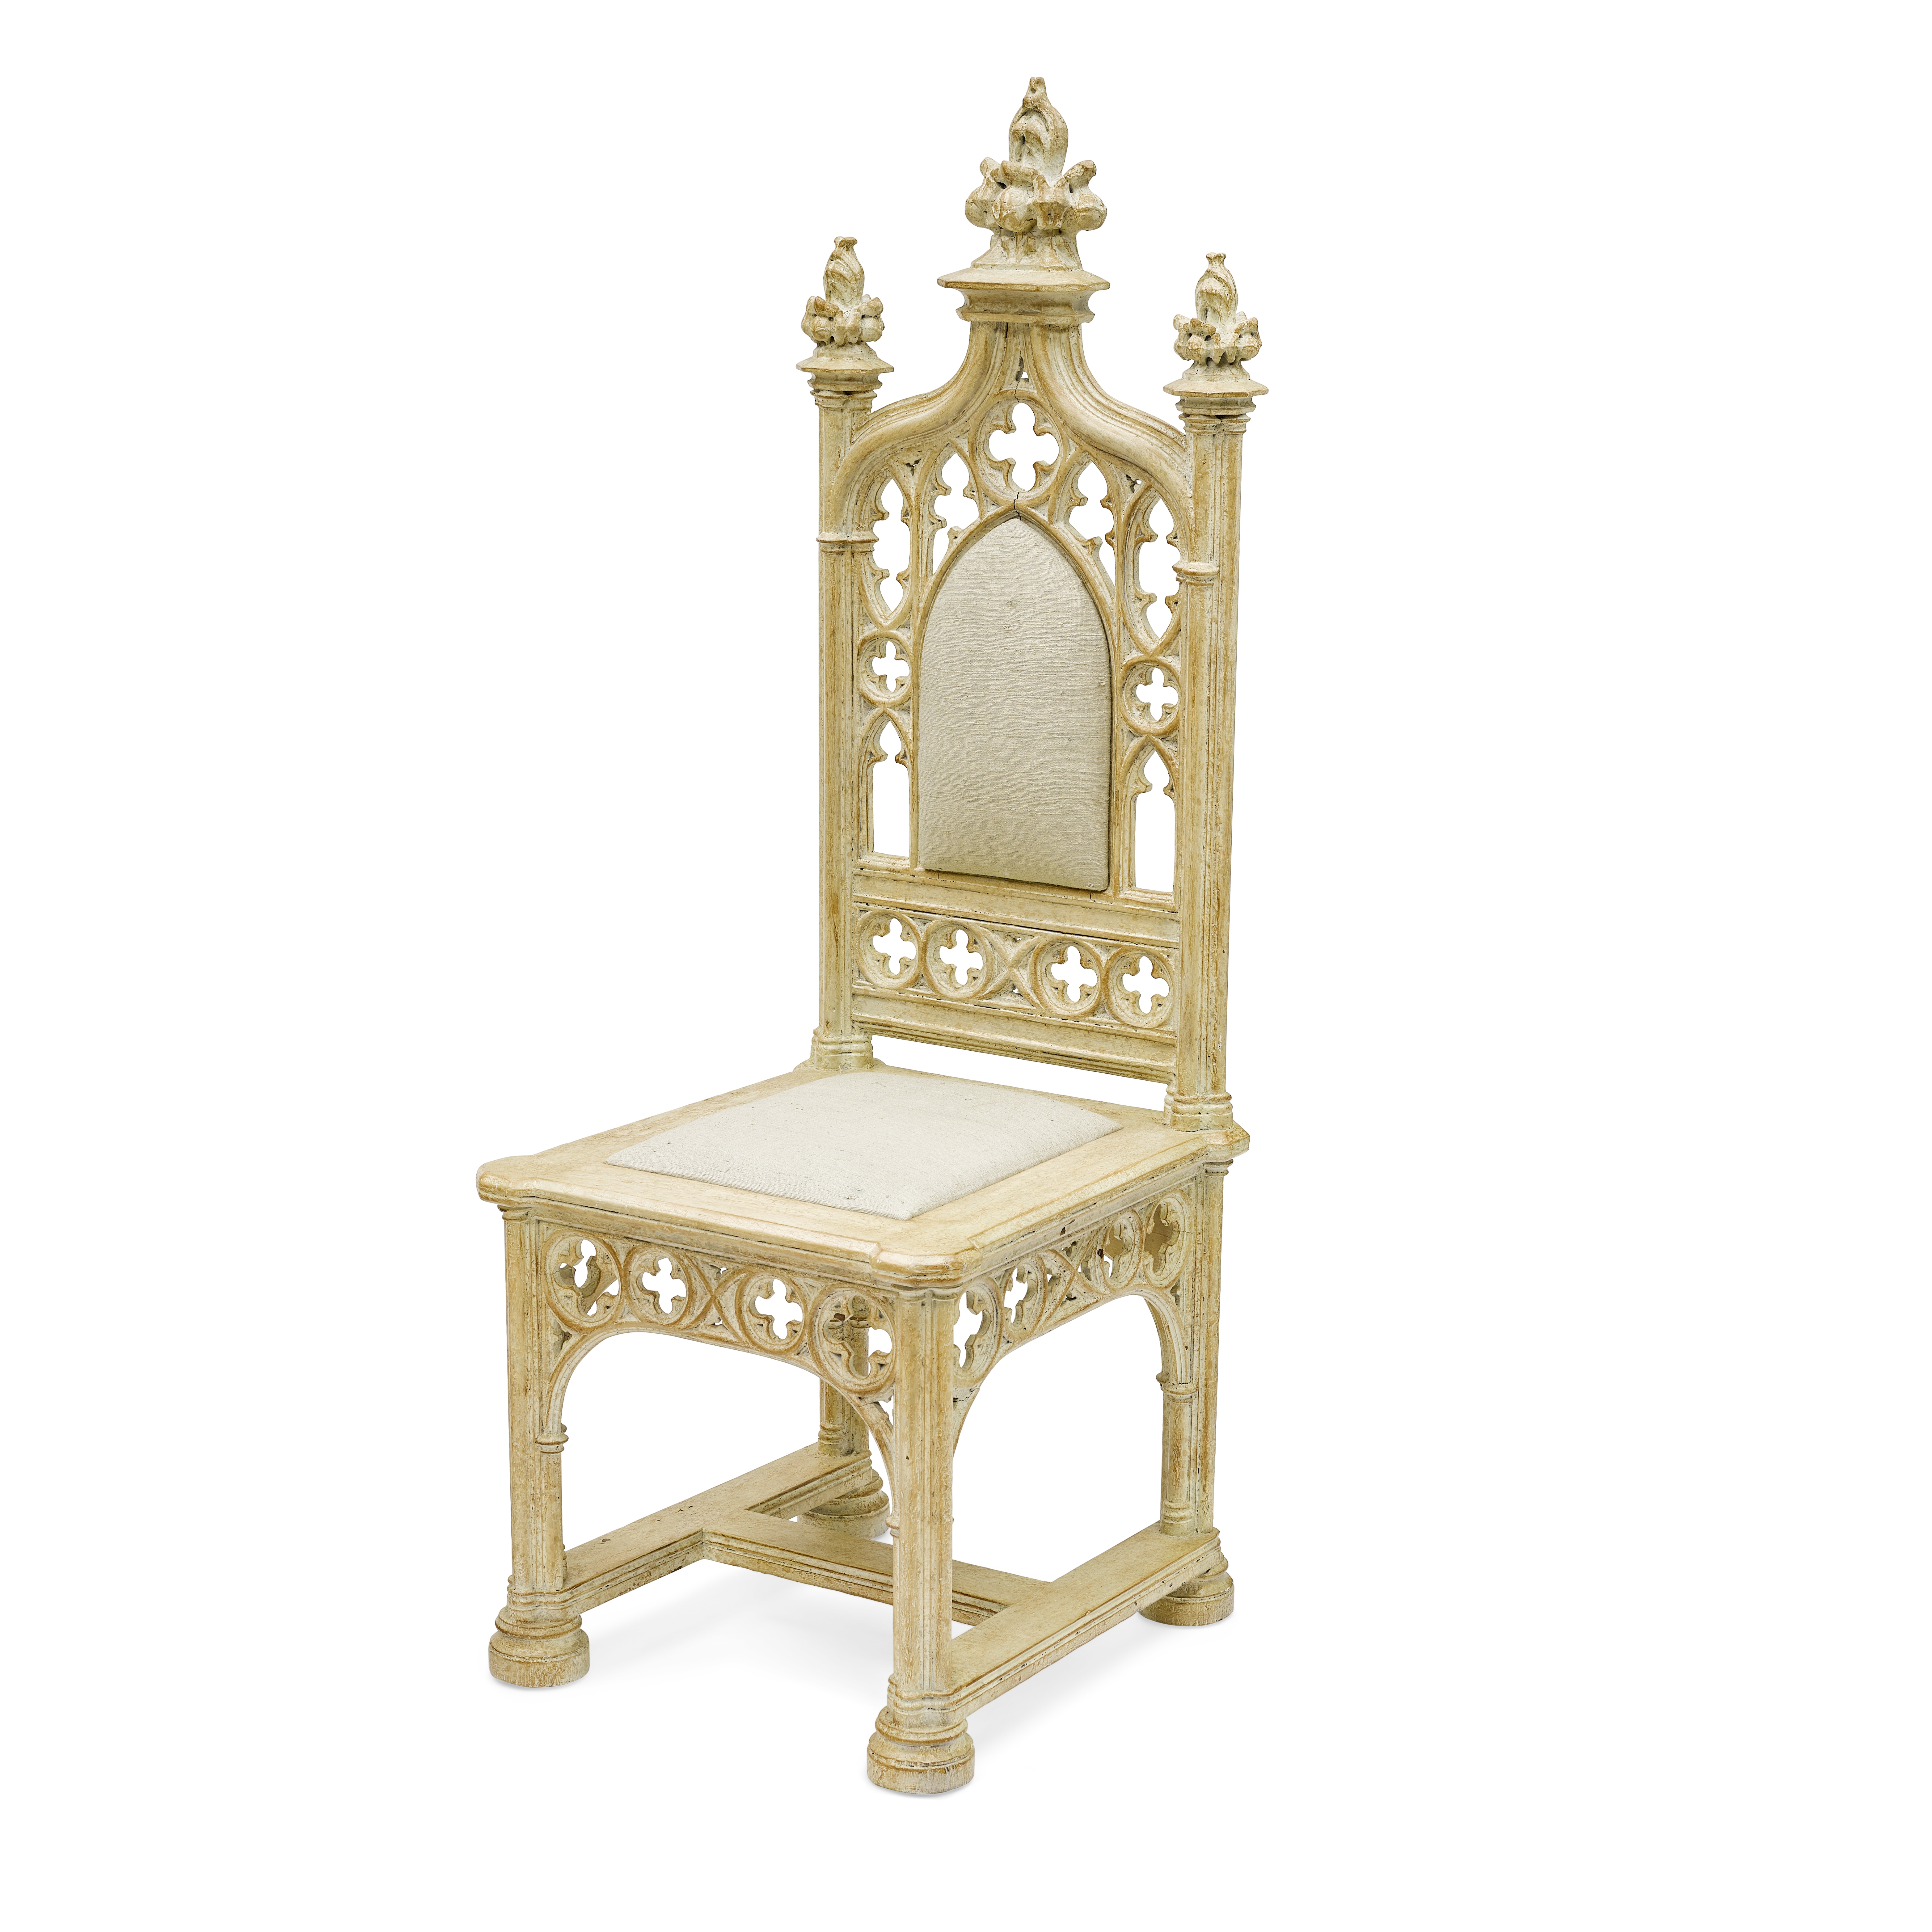 Lot 1054 - A Gone With the Wind chair from Scarlett's Atlanta mansion